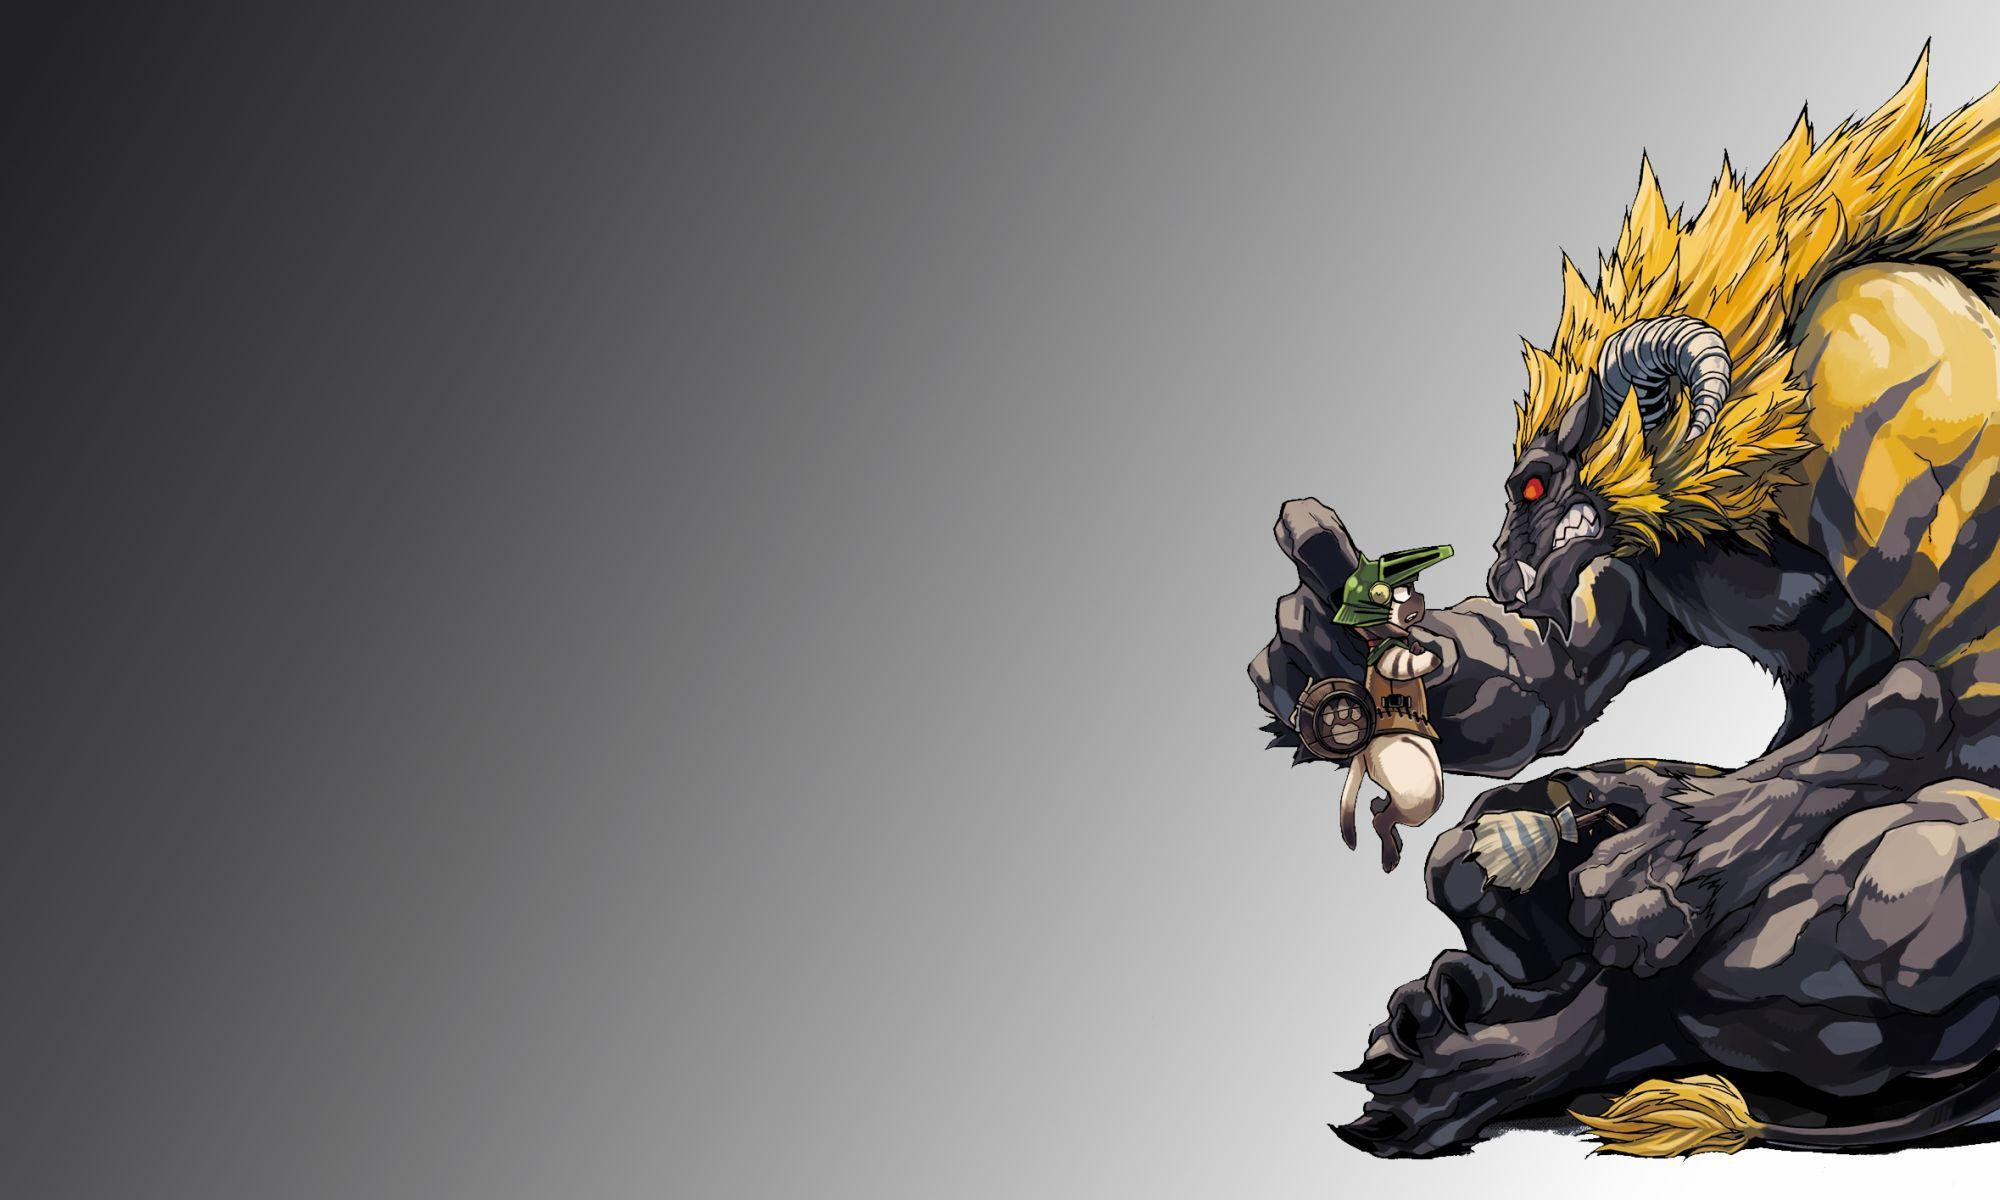 Download Monster Hunter Wallpaper 2000x1200